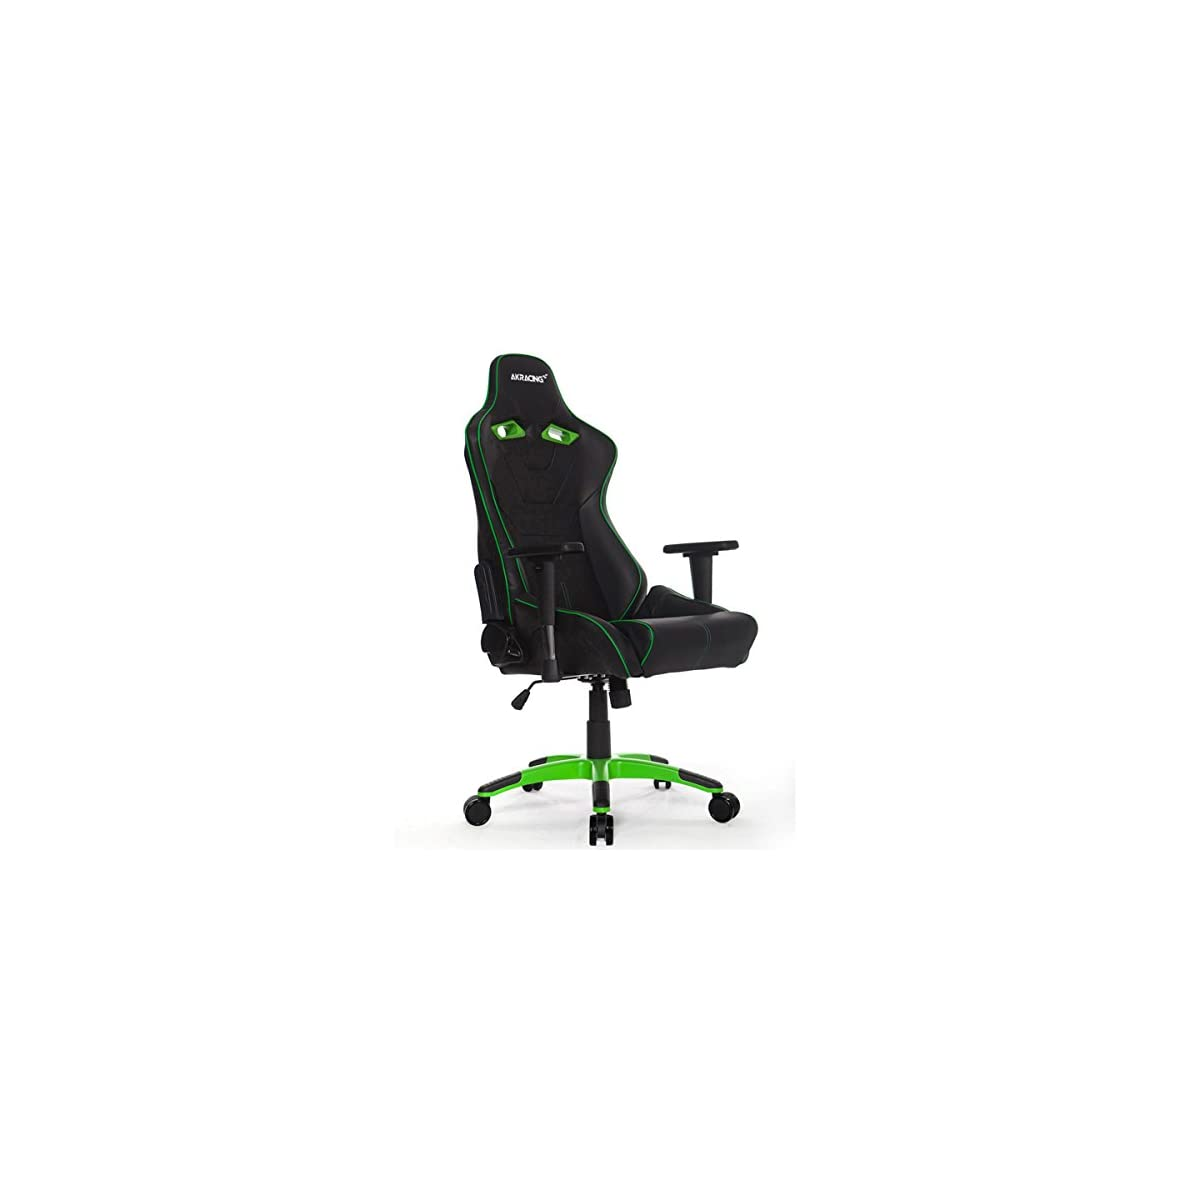 41xb%2BBcWZ9L. SS1200  - AKRacing NW - AK-NW-BG - Silla Gaming, Color Negro/Verde